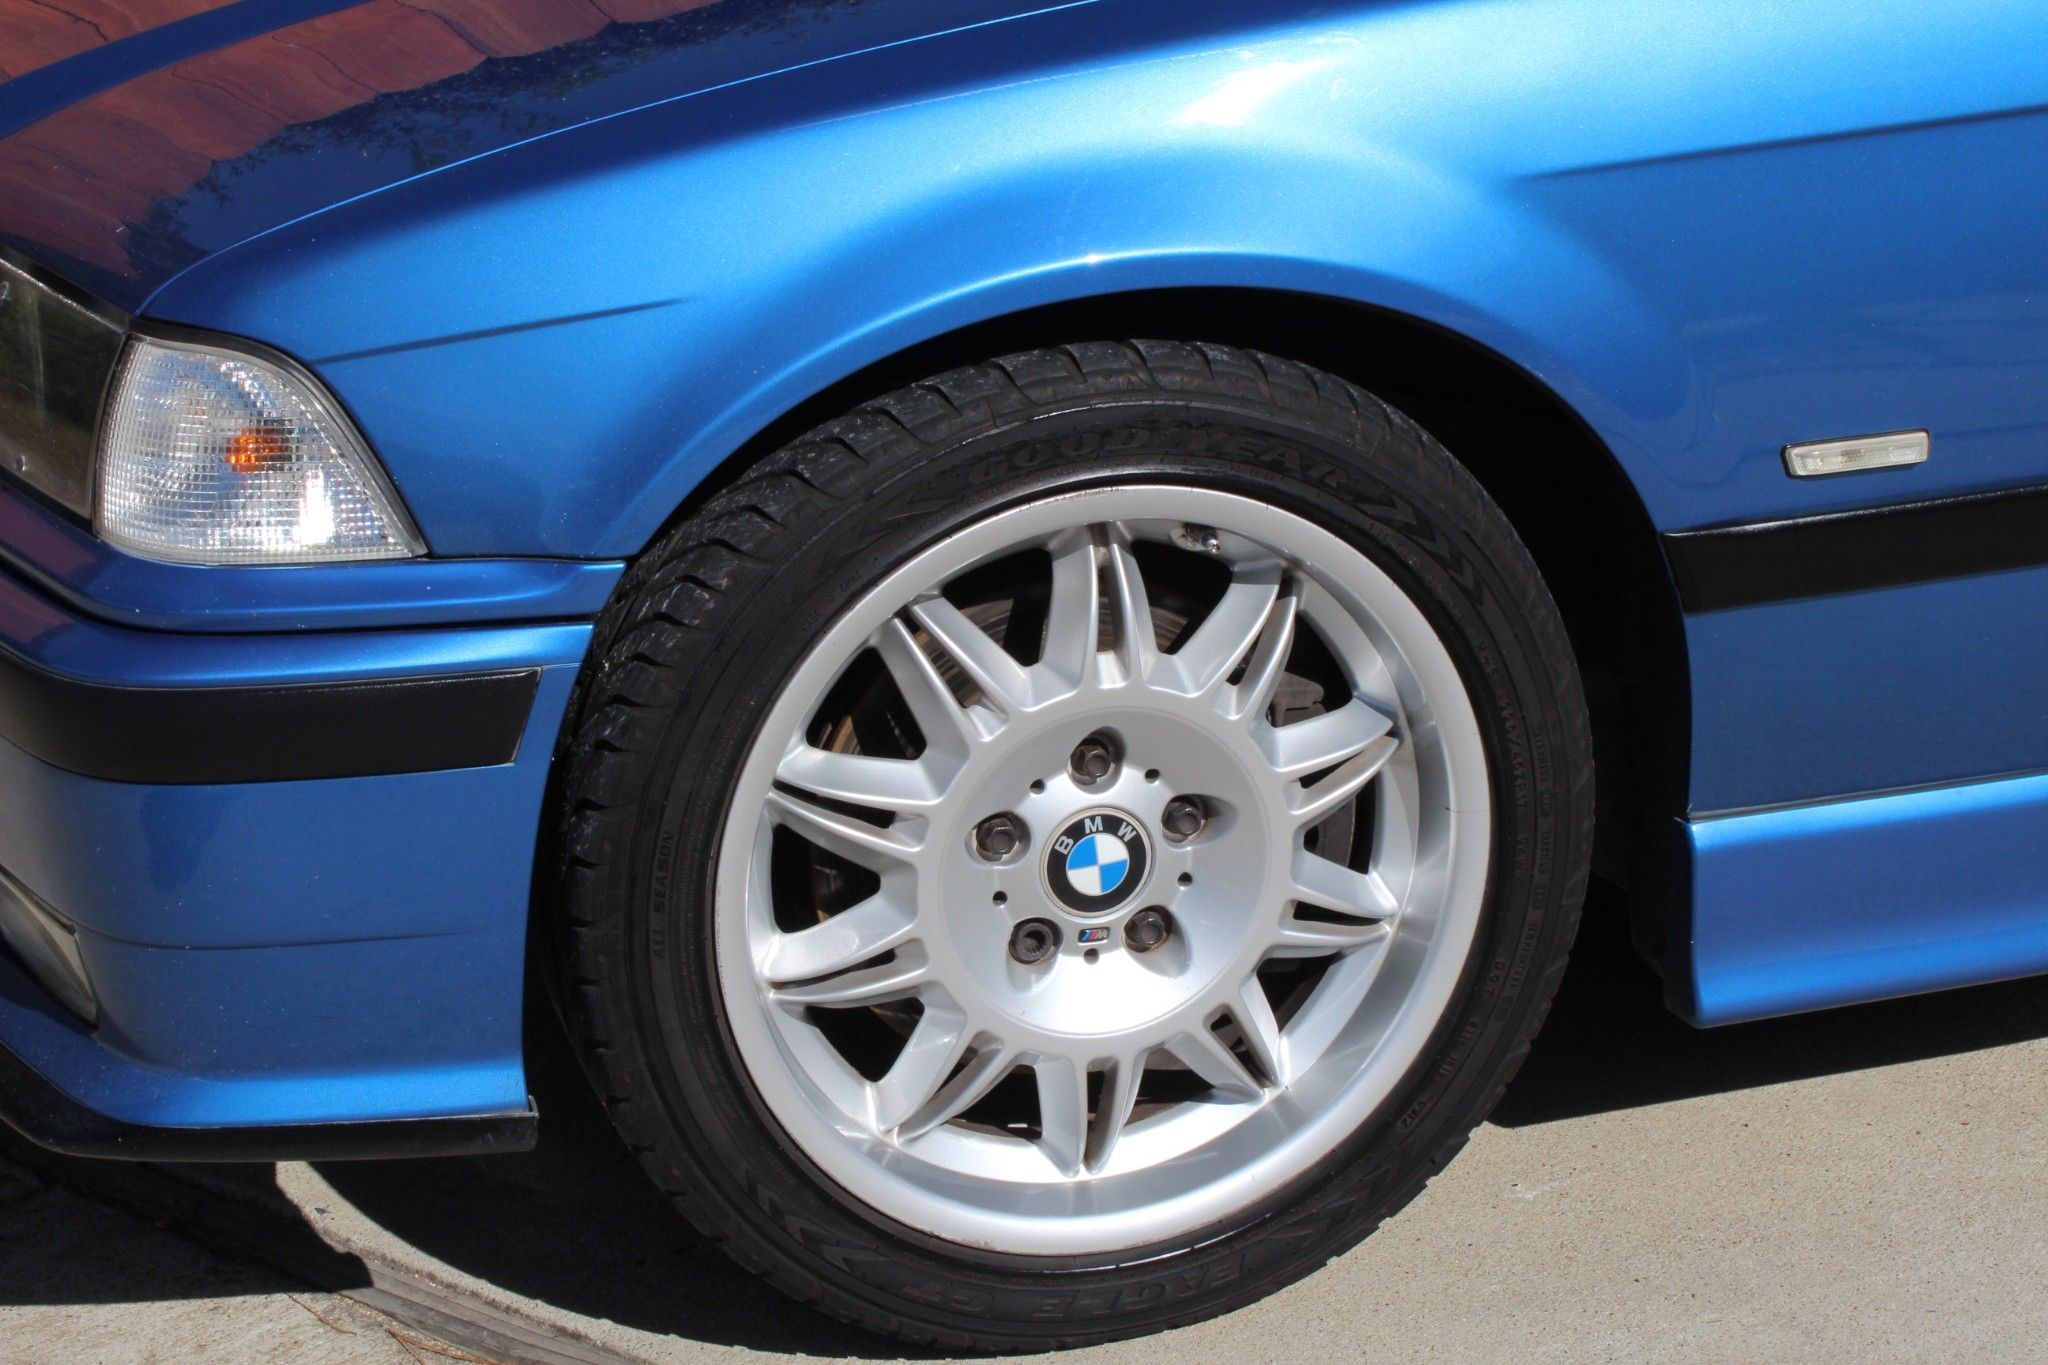 This 1997 BMW M3 is a clean Estoril Blue example that has been maintained as a daily driver. The seller purchased it 2009 with 100k miles on the odometer, and has logged another 100k behind the wheel in the last 6 years. It has been recently serviced and maintenance under the seller's ownership